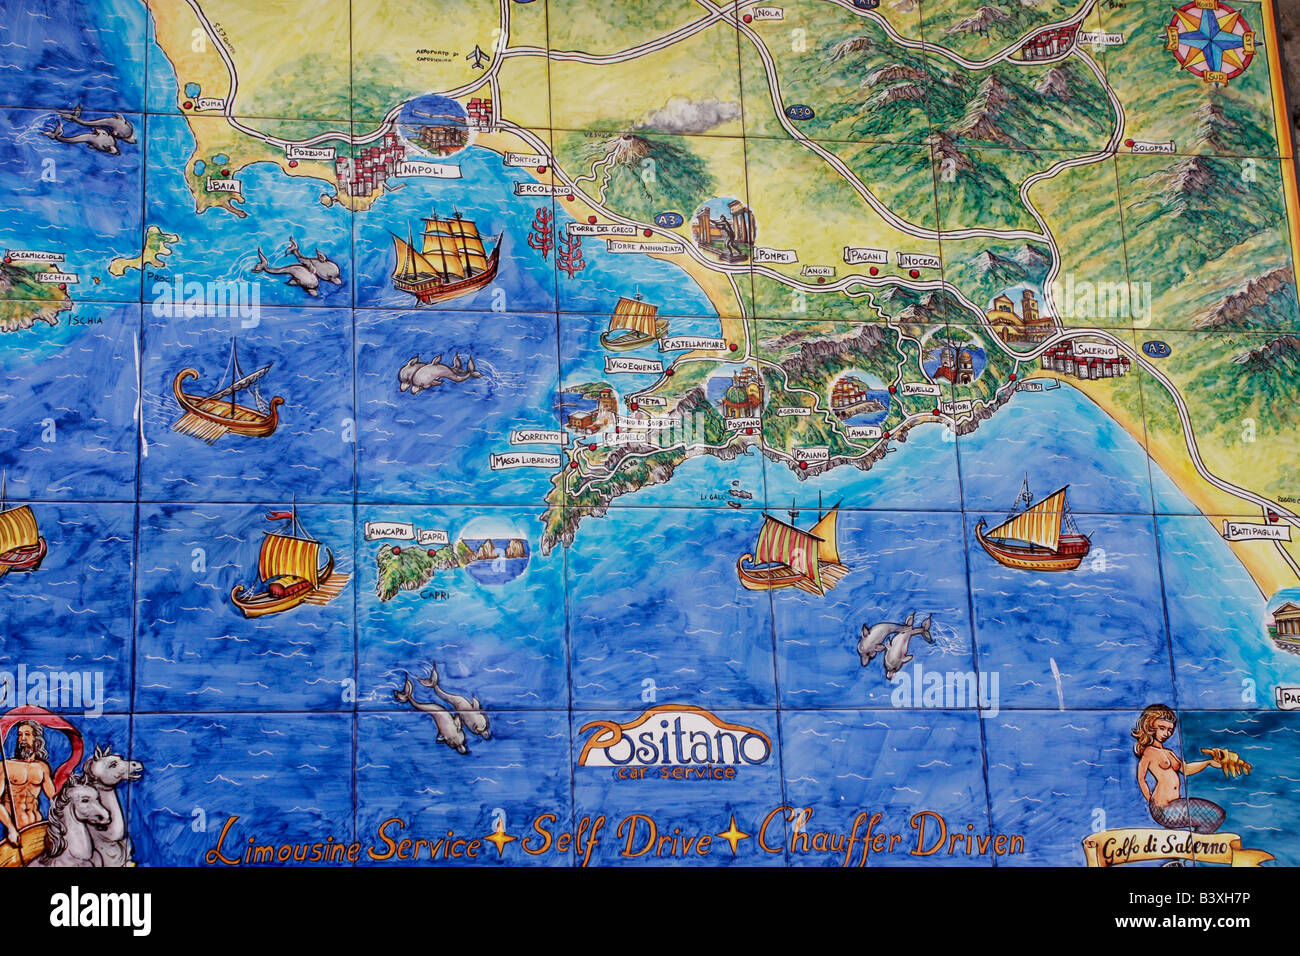 Ceramic Tile Map Of Positano Amalfi Coast Italy Stock Photo